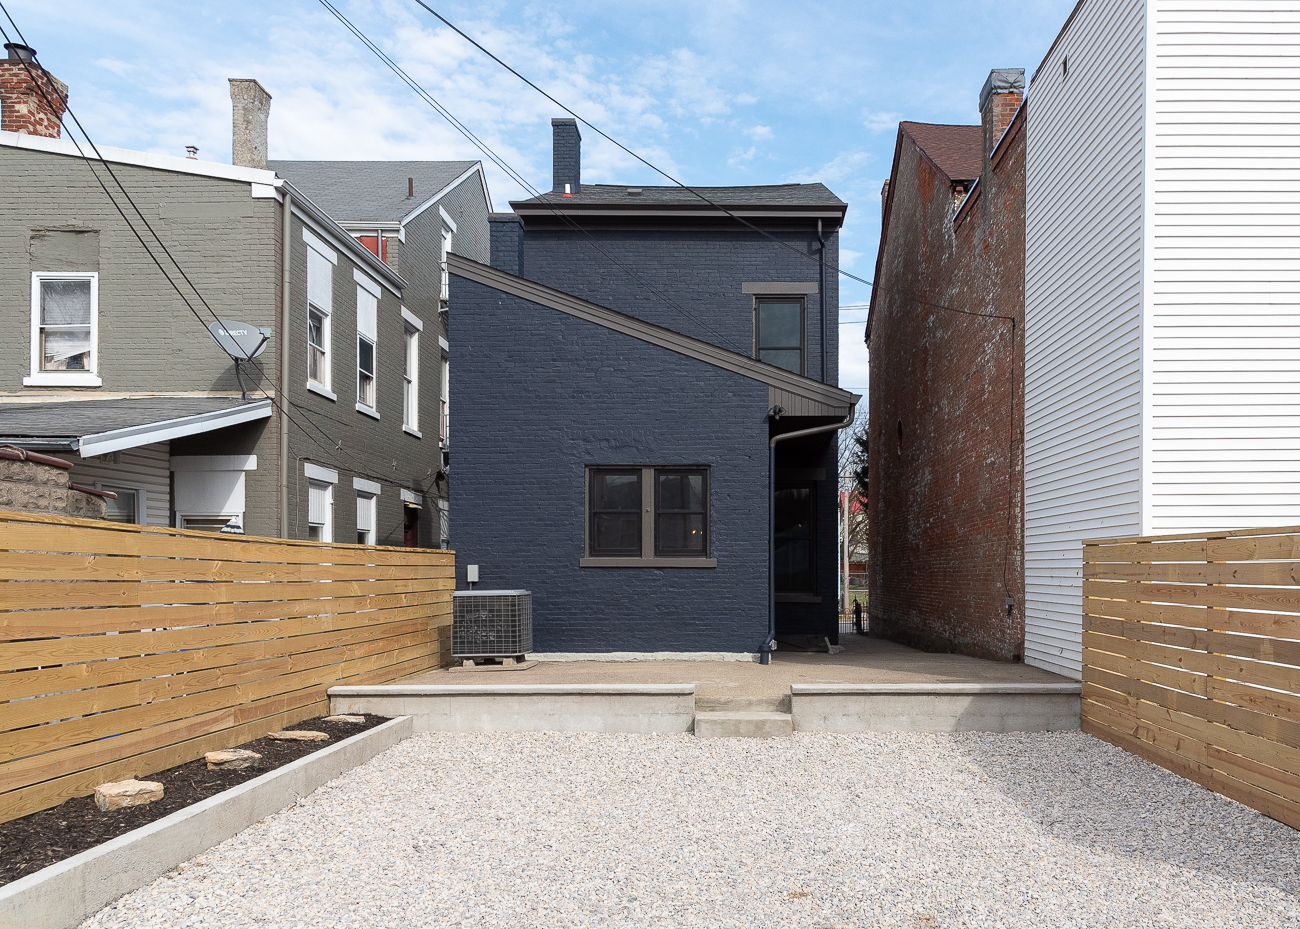 The rear of the house sports a modest patio and a two-car parking spot accessible via an alley. / Image: Phil Armstrong, Cincinnati Refined // Published: 3.15.19